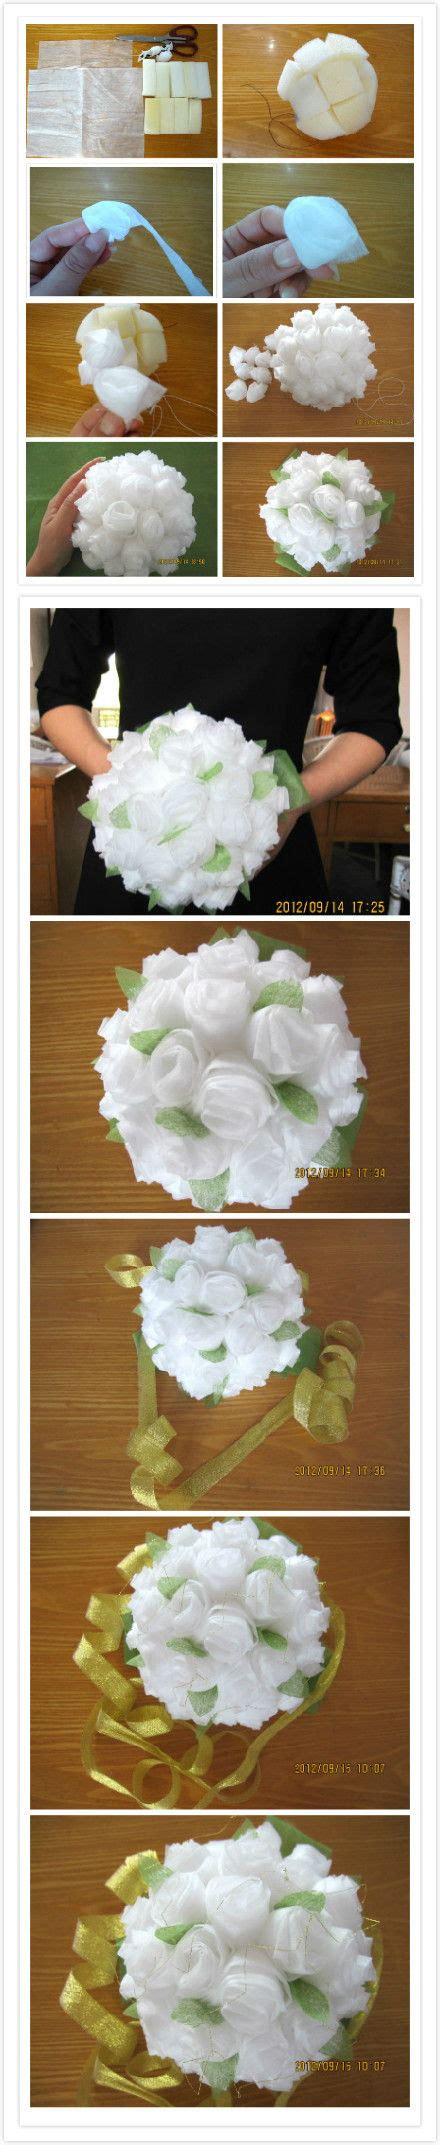 How To Make Tissue Paper Bouquet - how to make baby tissue paper flower bouquet step by step